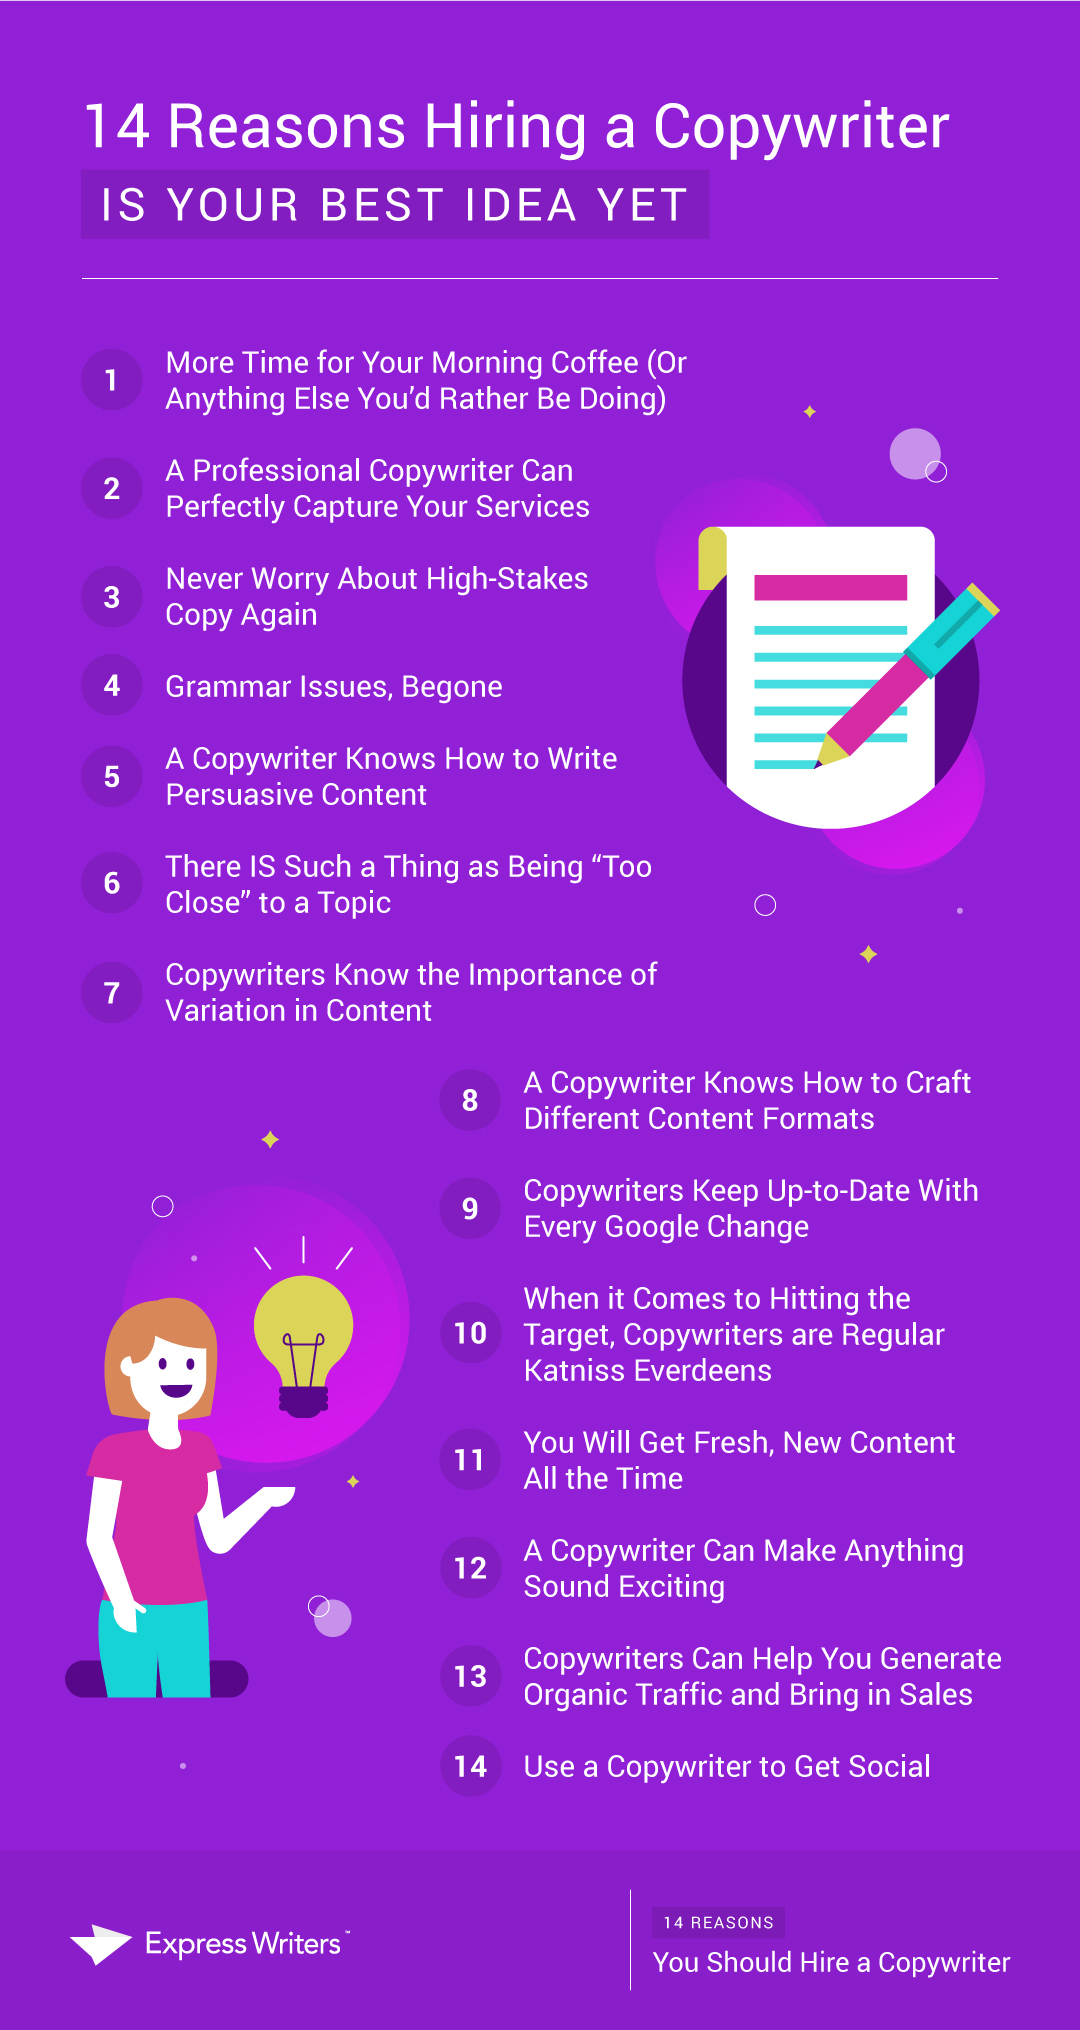 14 Reasons Why You Need a Copywriter